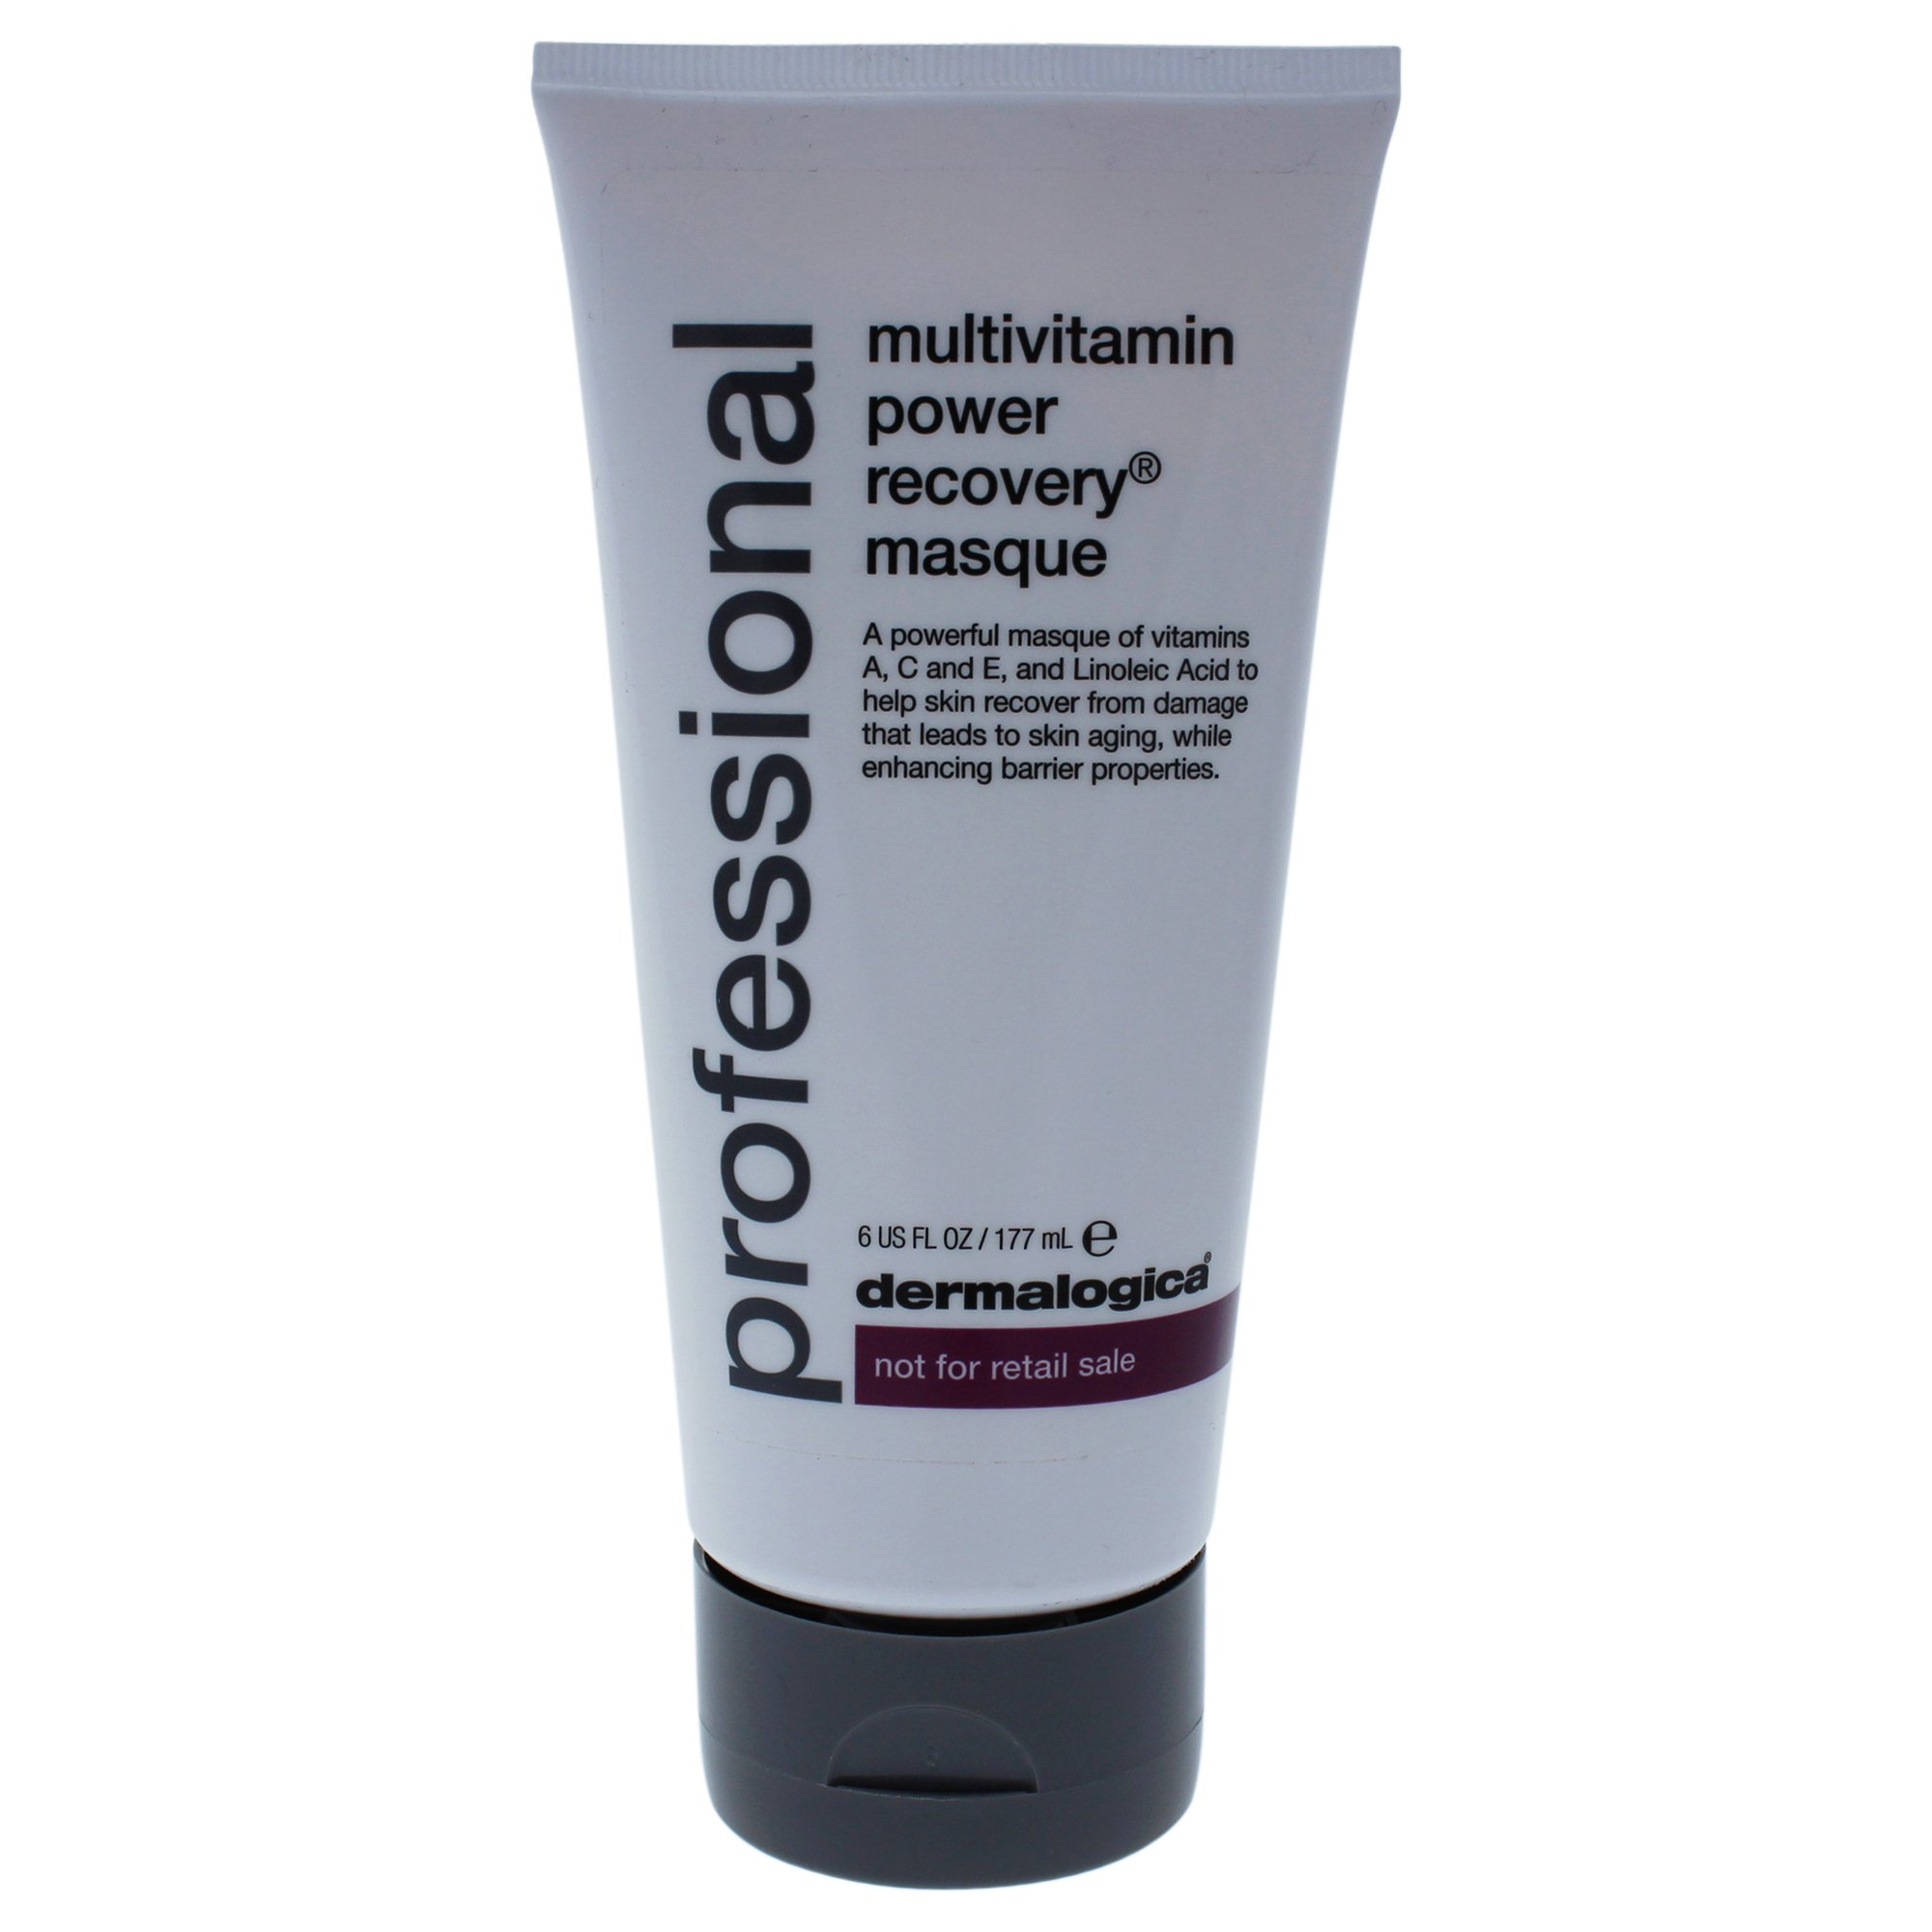 Dermalogica Multivitamin Power Recovery Masque, 6 Fluid Ounce